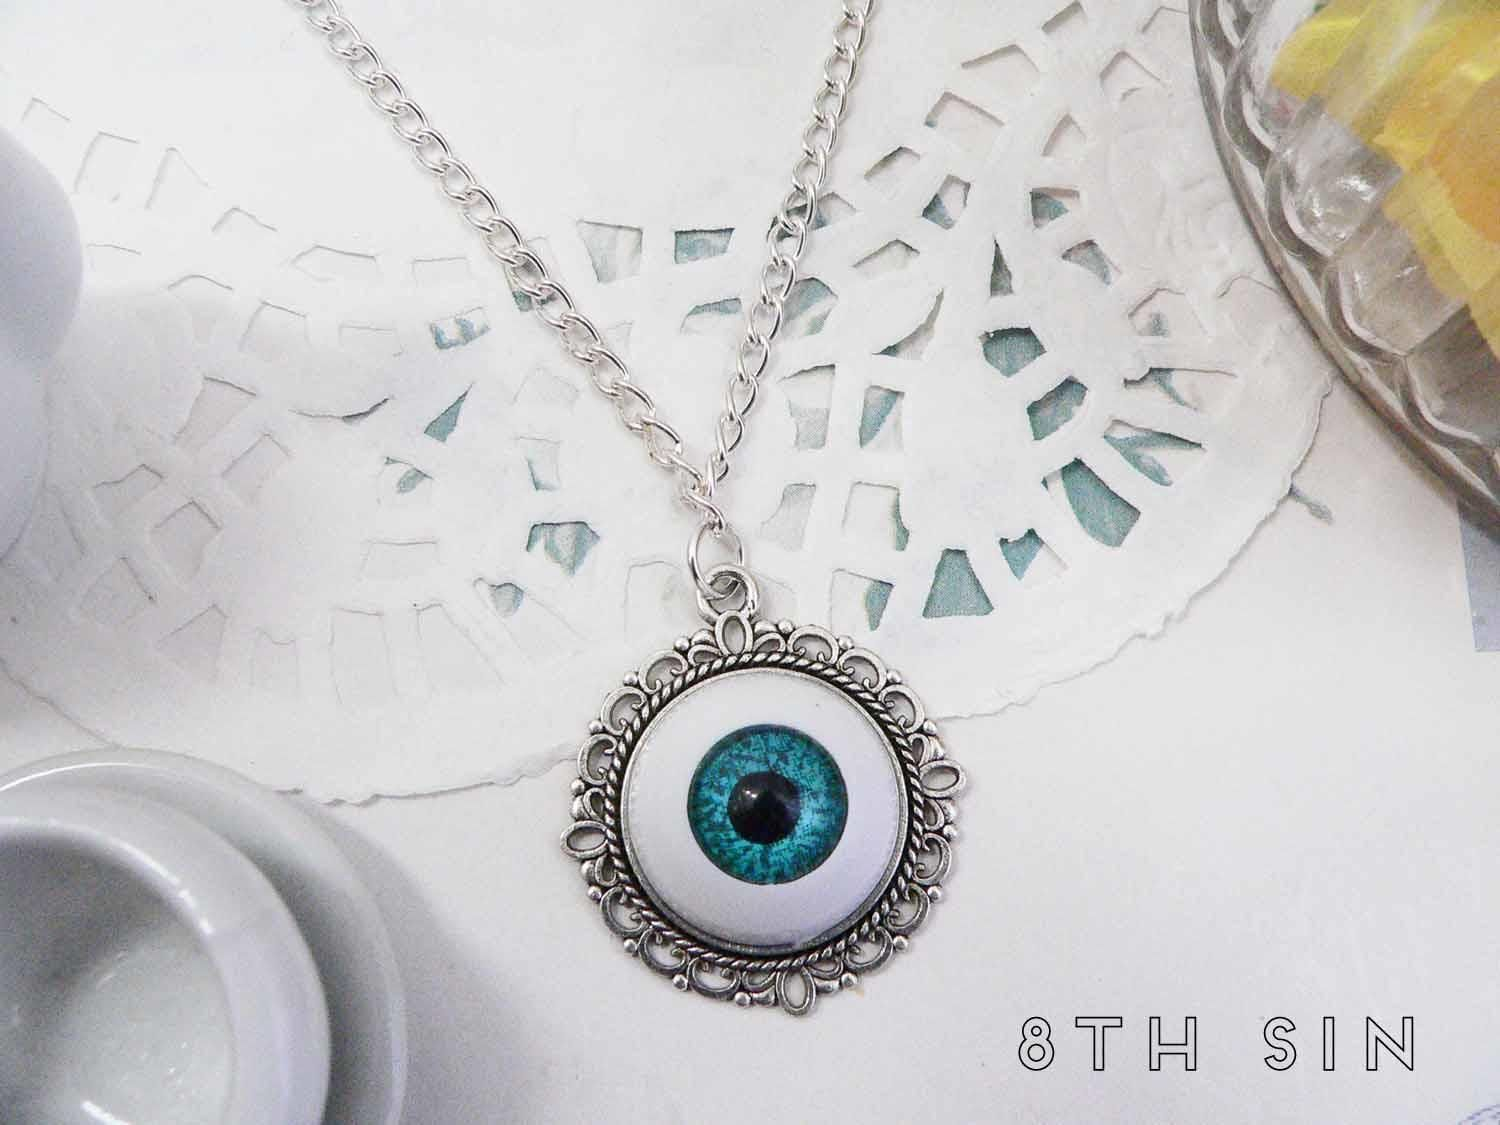 from eye com alibaba accessories on wings item necklace charm goth in angel jewelry group evil pendants pendant aliexpress eyeball